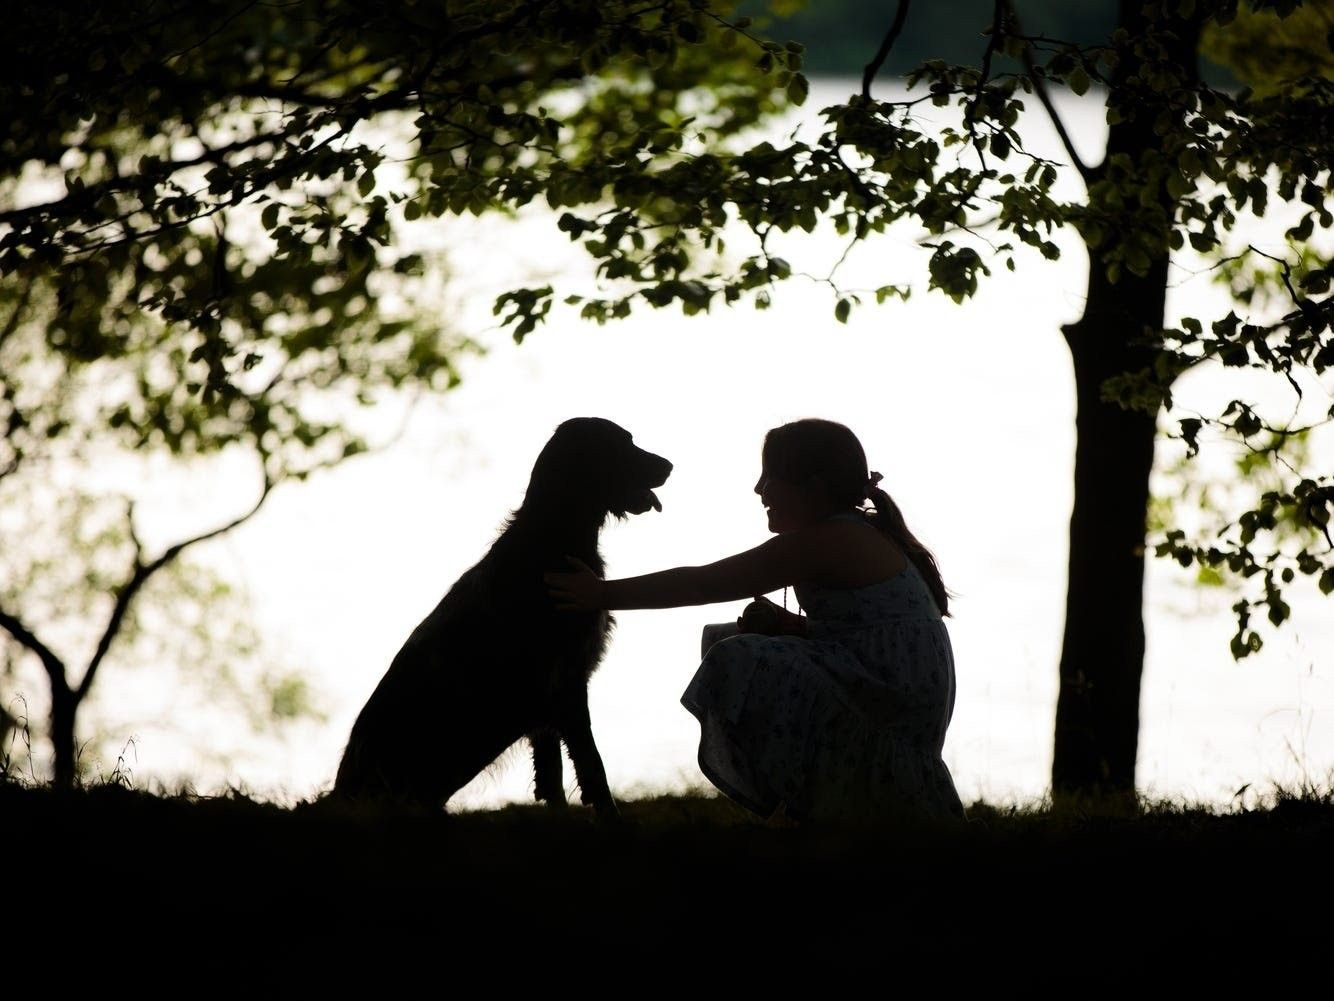 Pin by Steve Priley on what i love Dog photograph, Dog